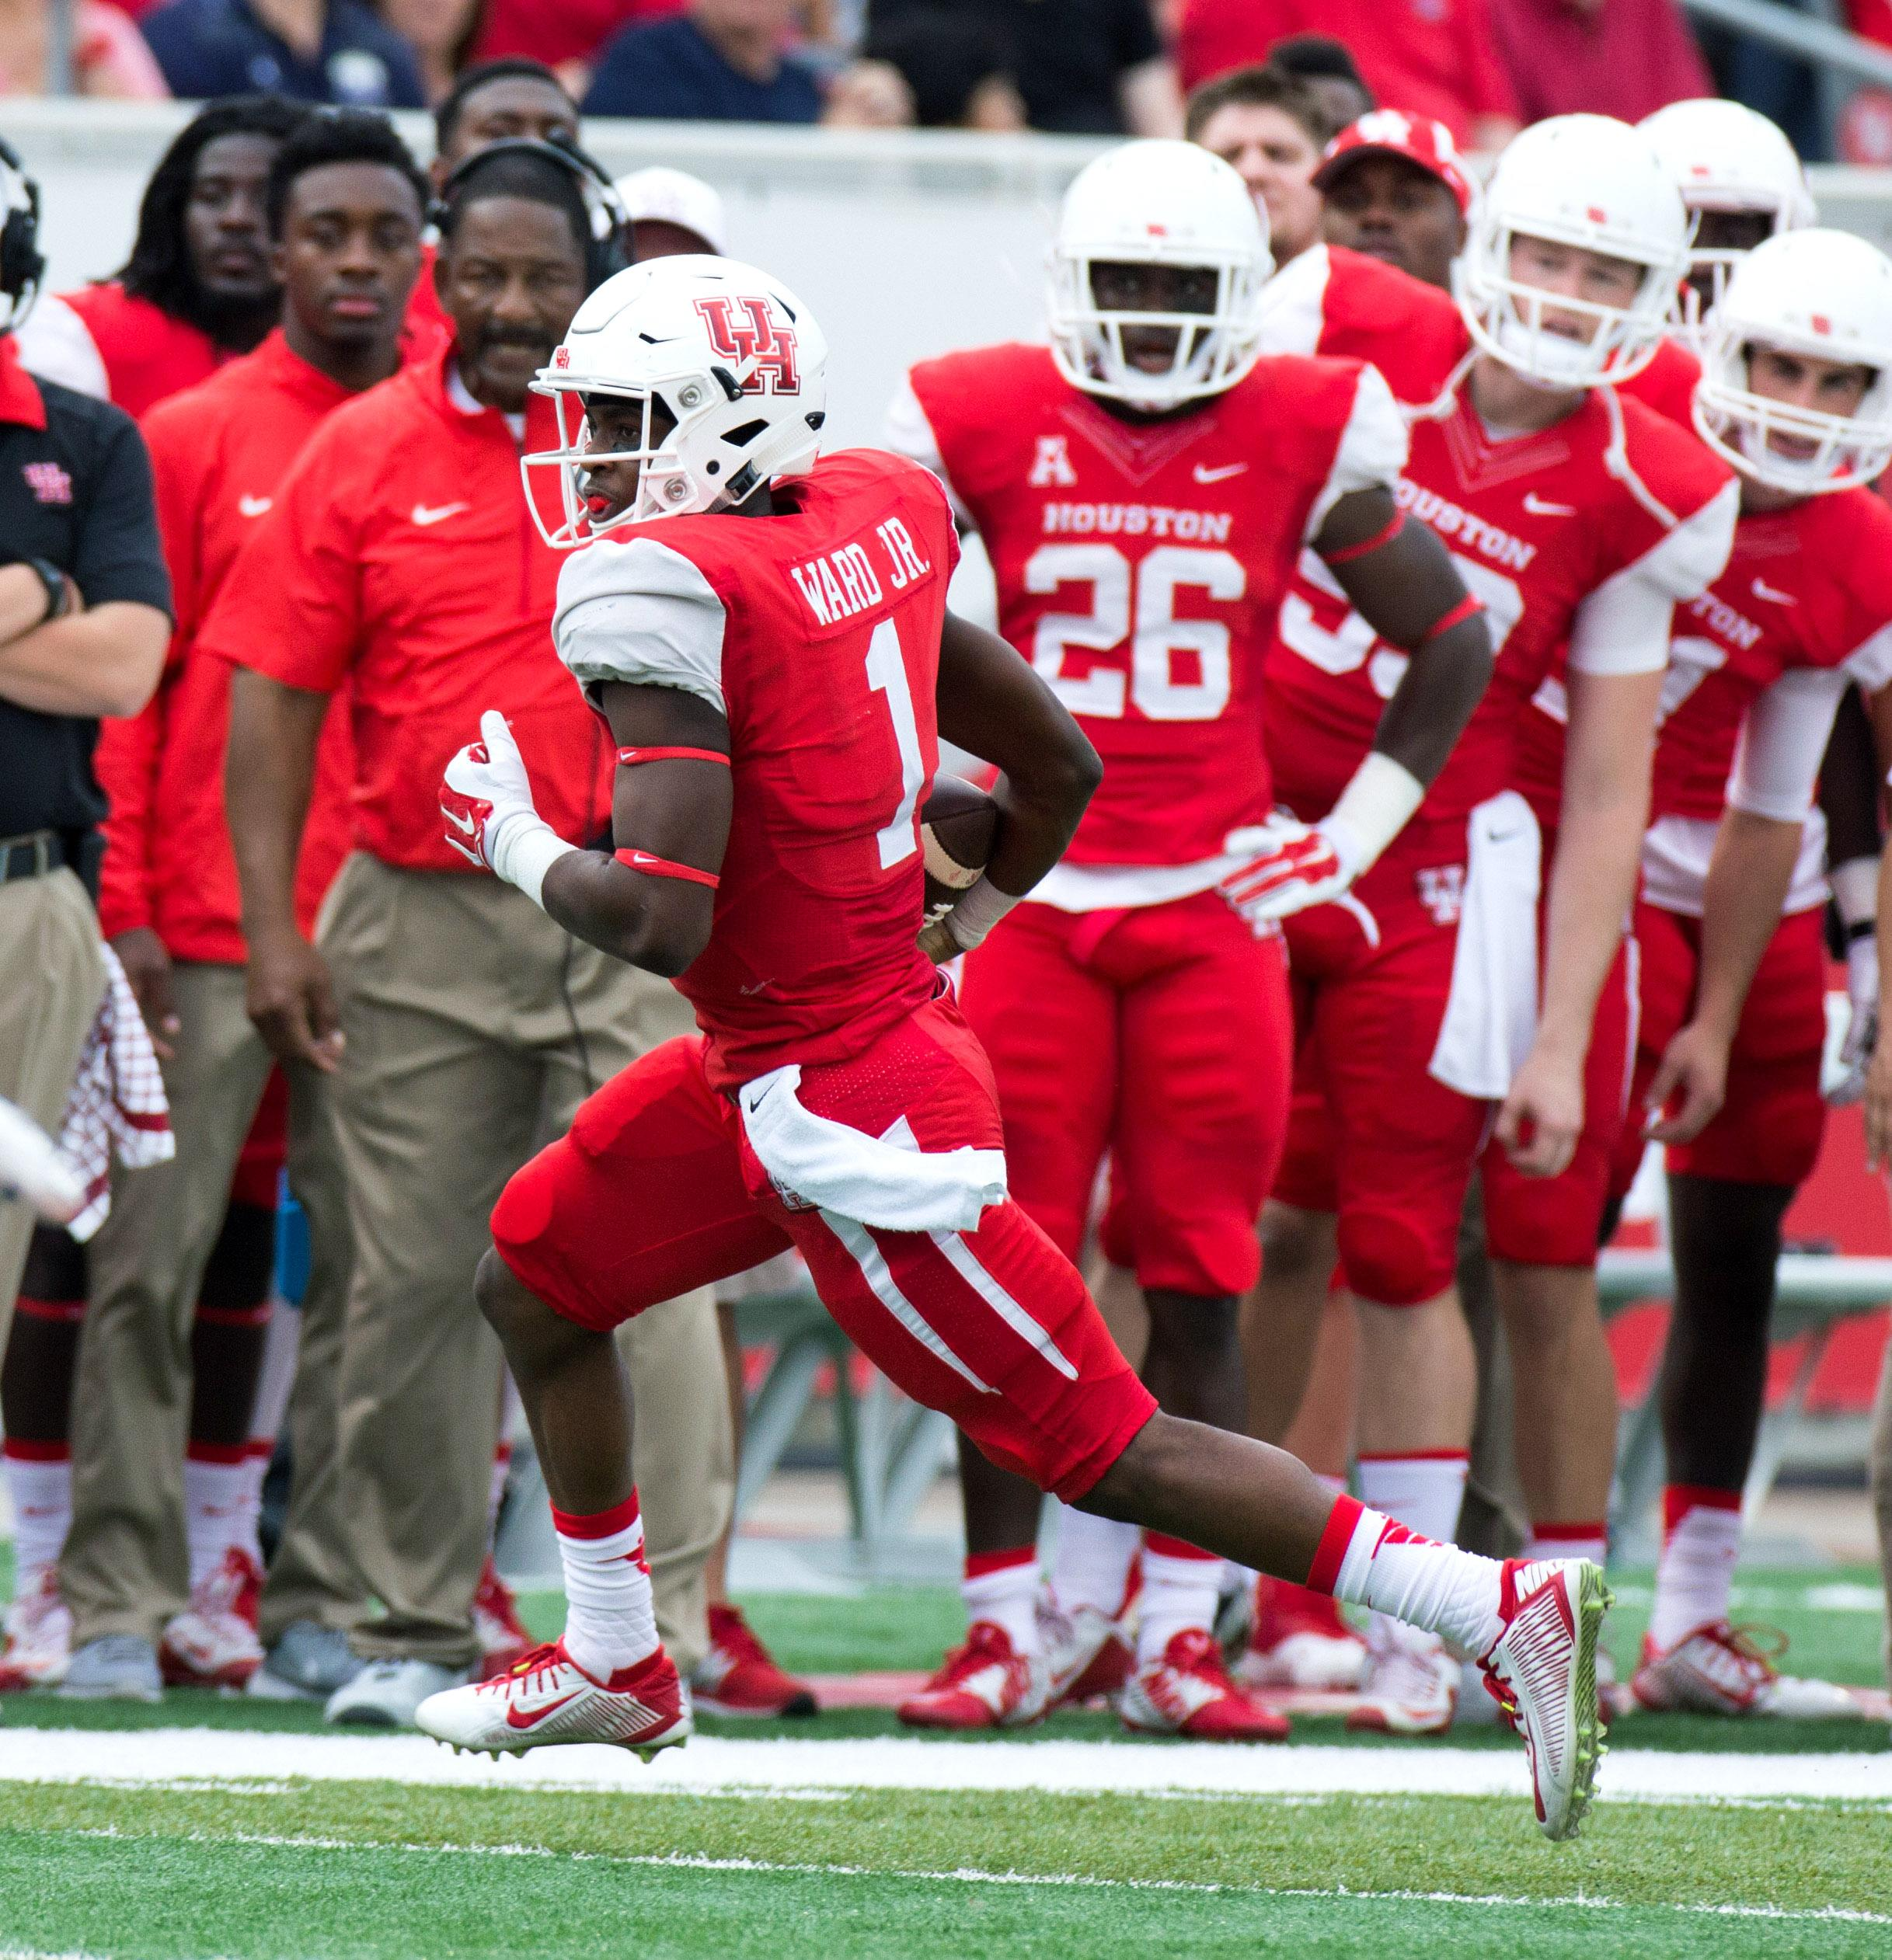 Ward leads No. 21 Houston to 52-31 win over No. 16 Navy